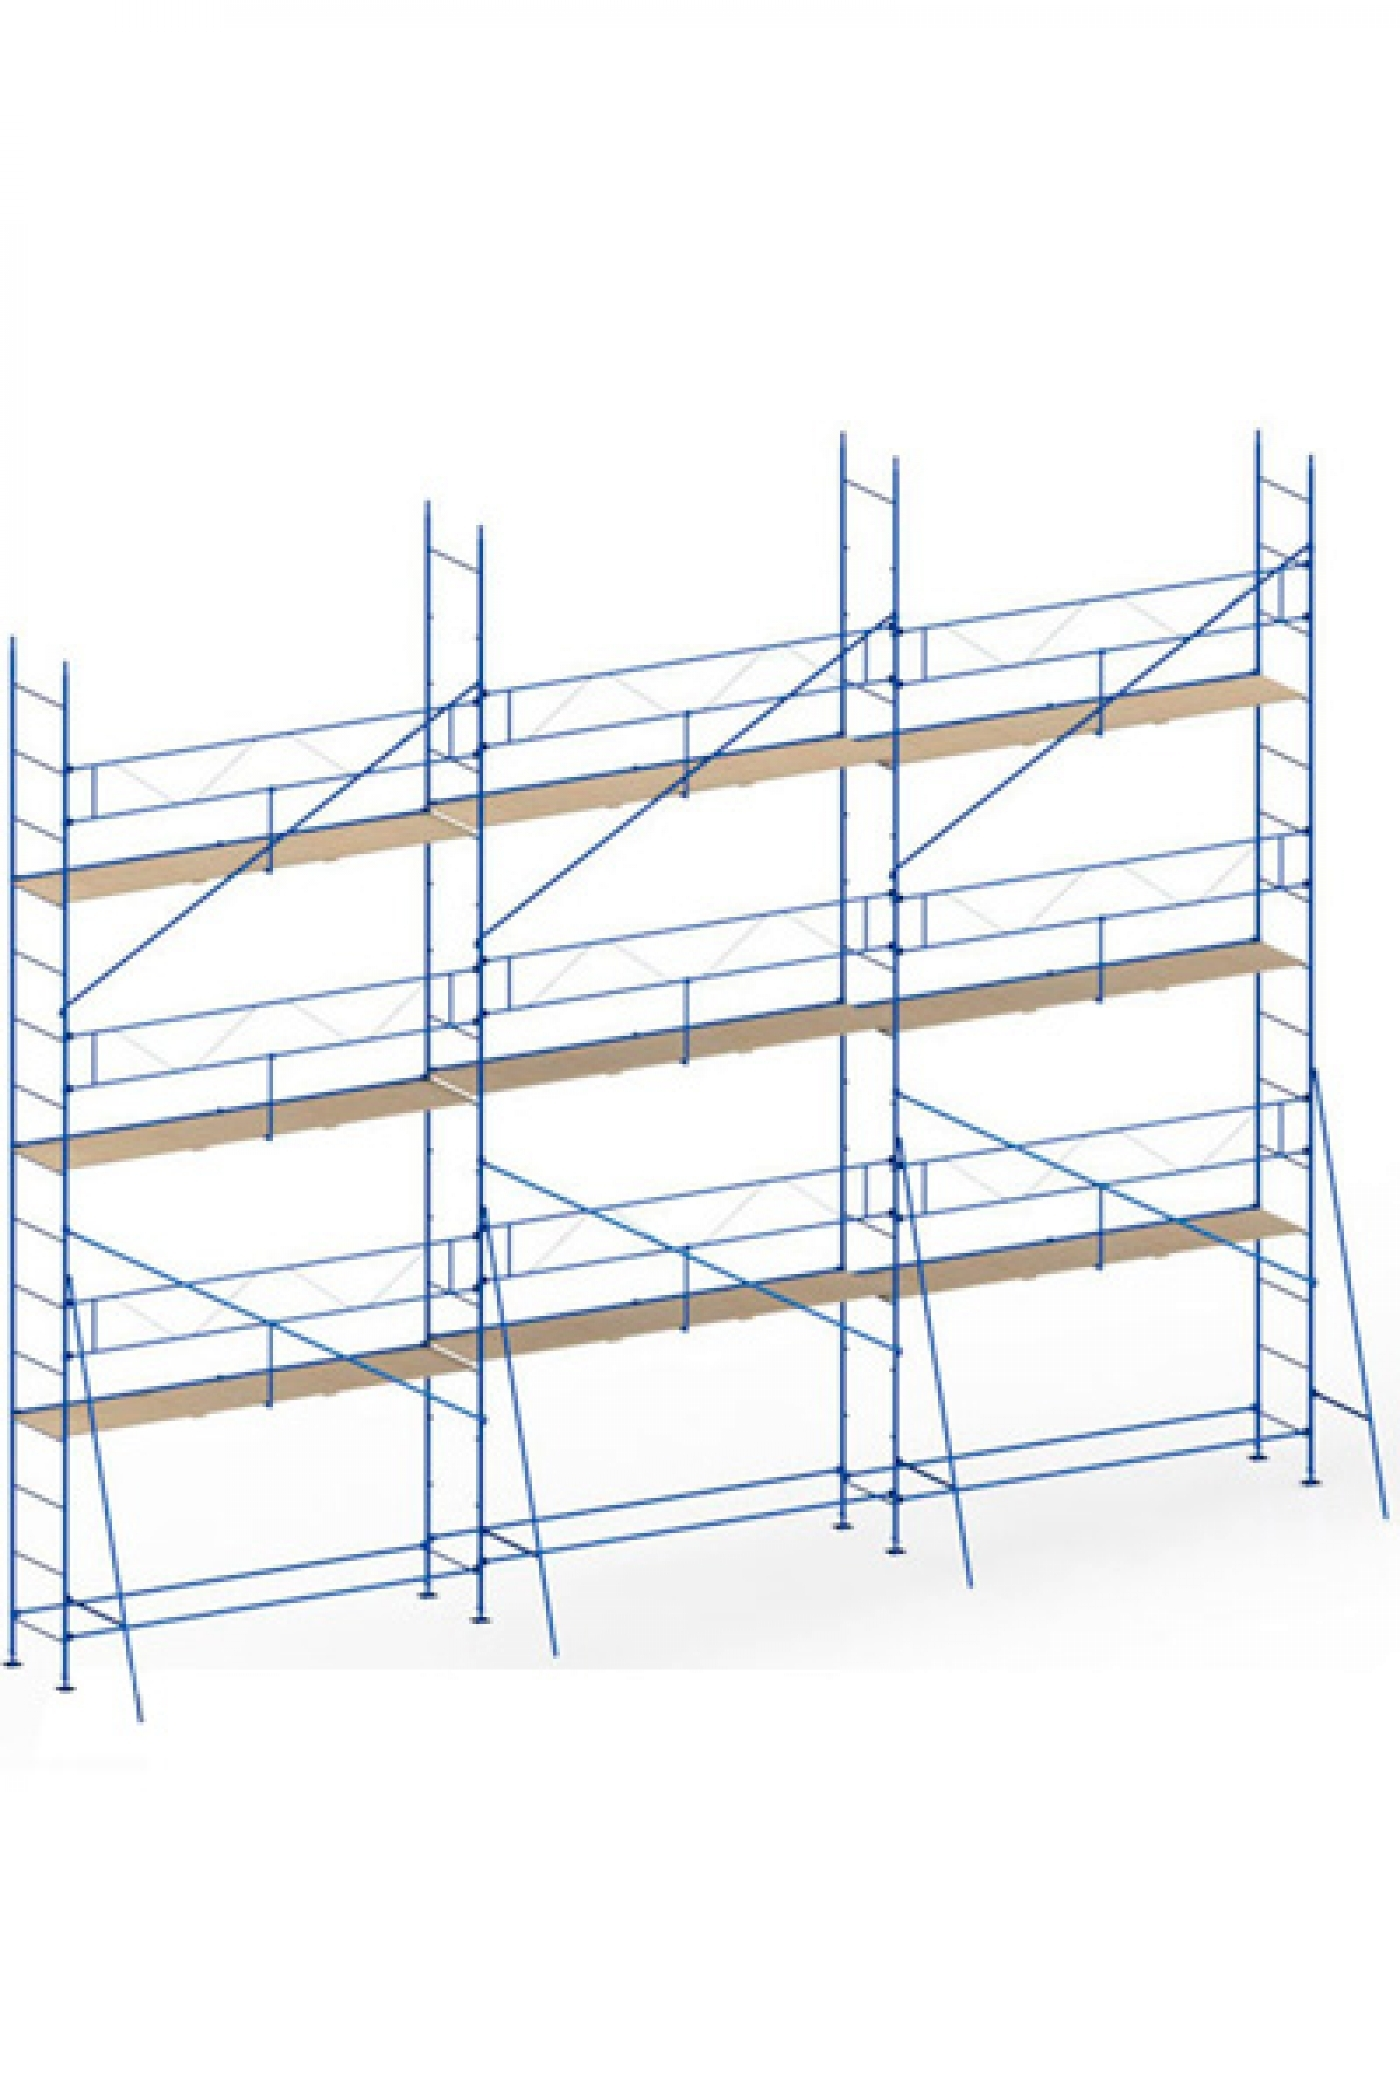 Wedge-clamp scaffolding